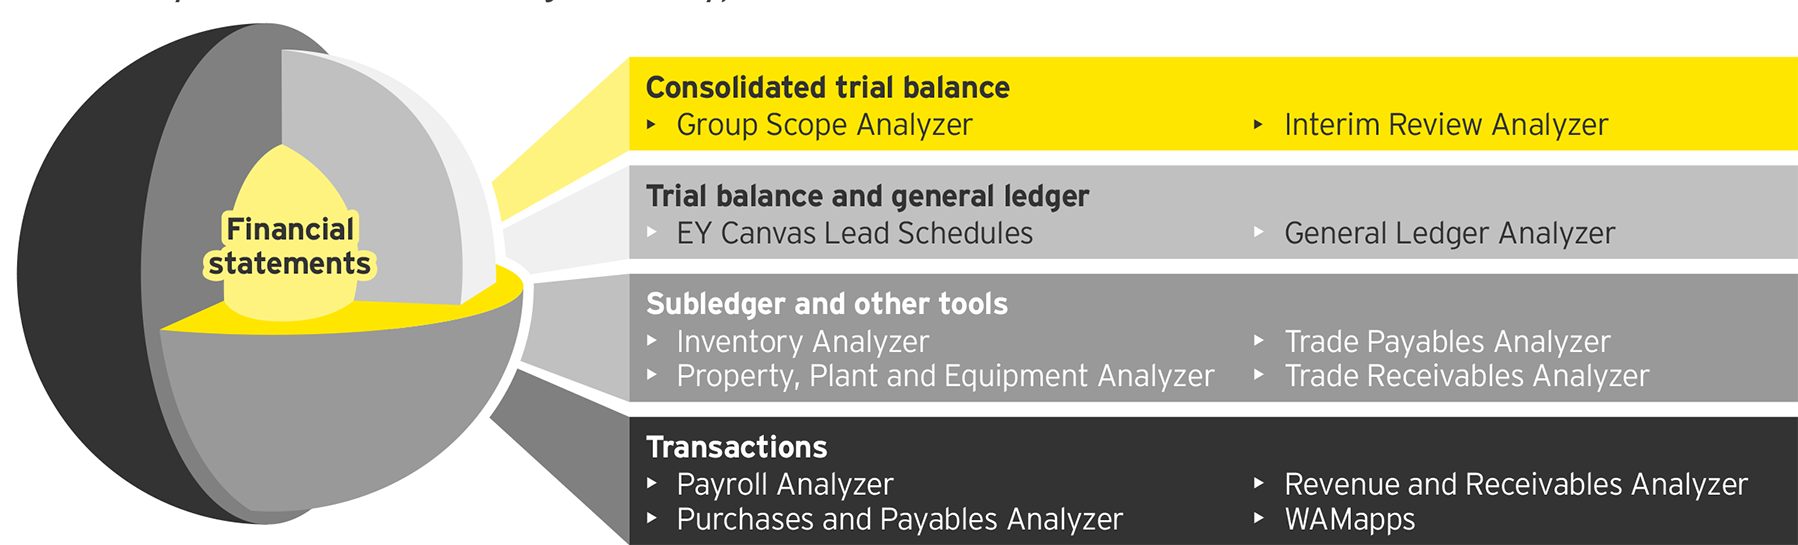 EY - Our analyzers accommodate a range of data types